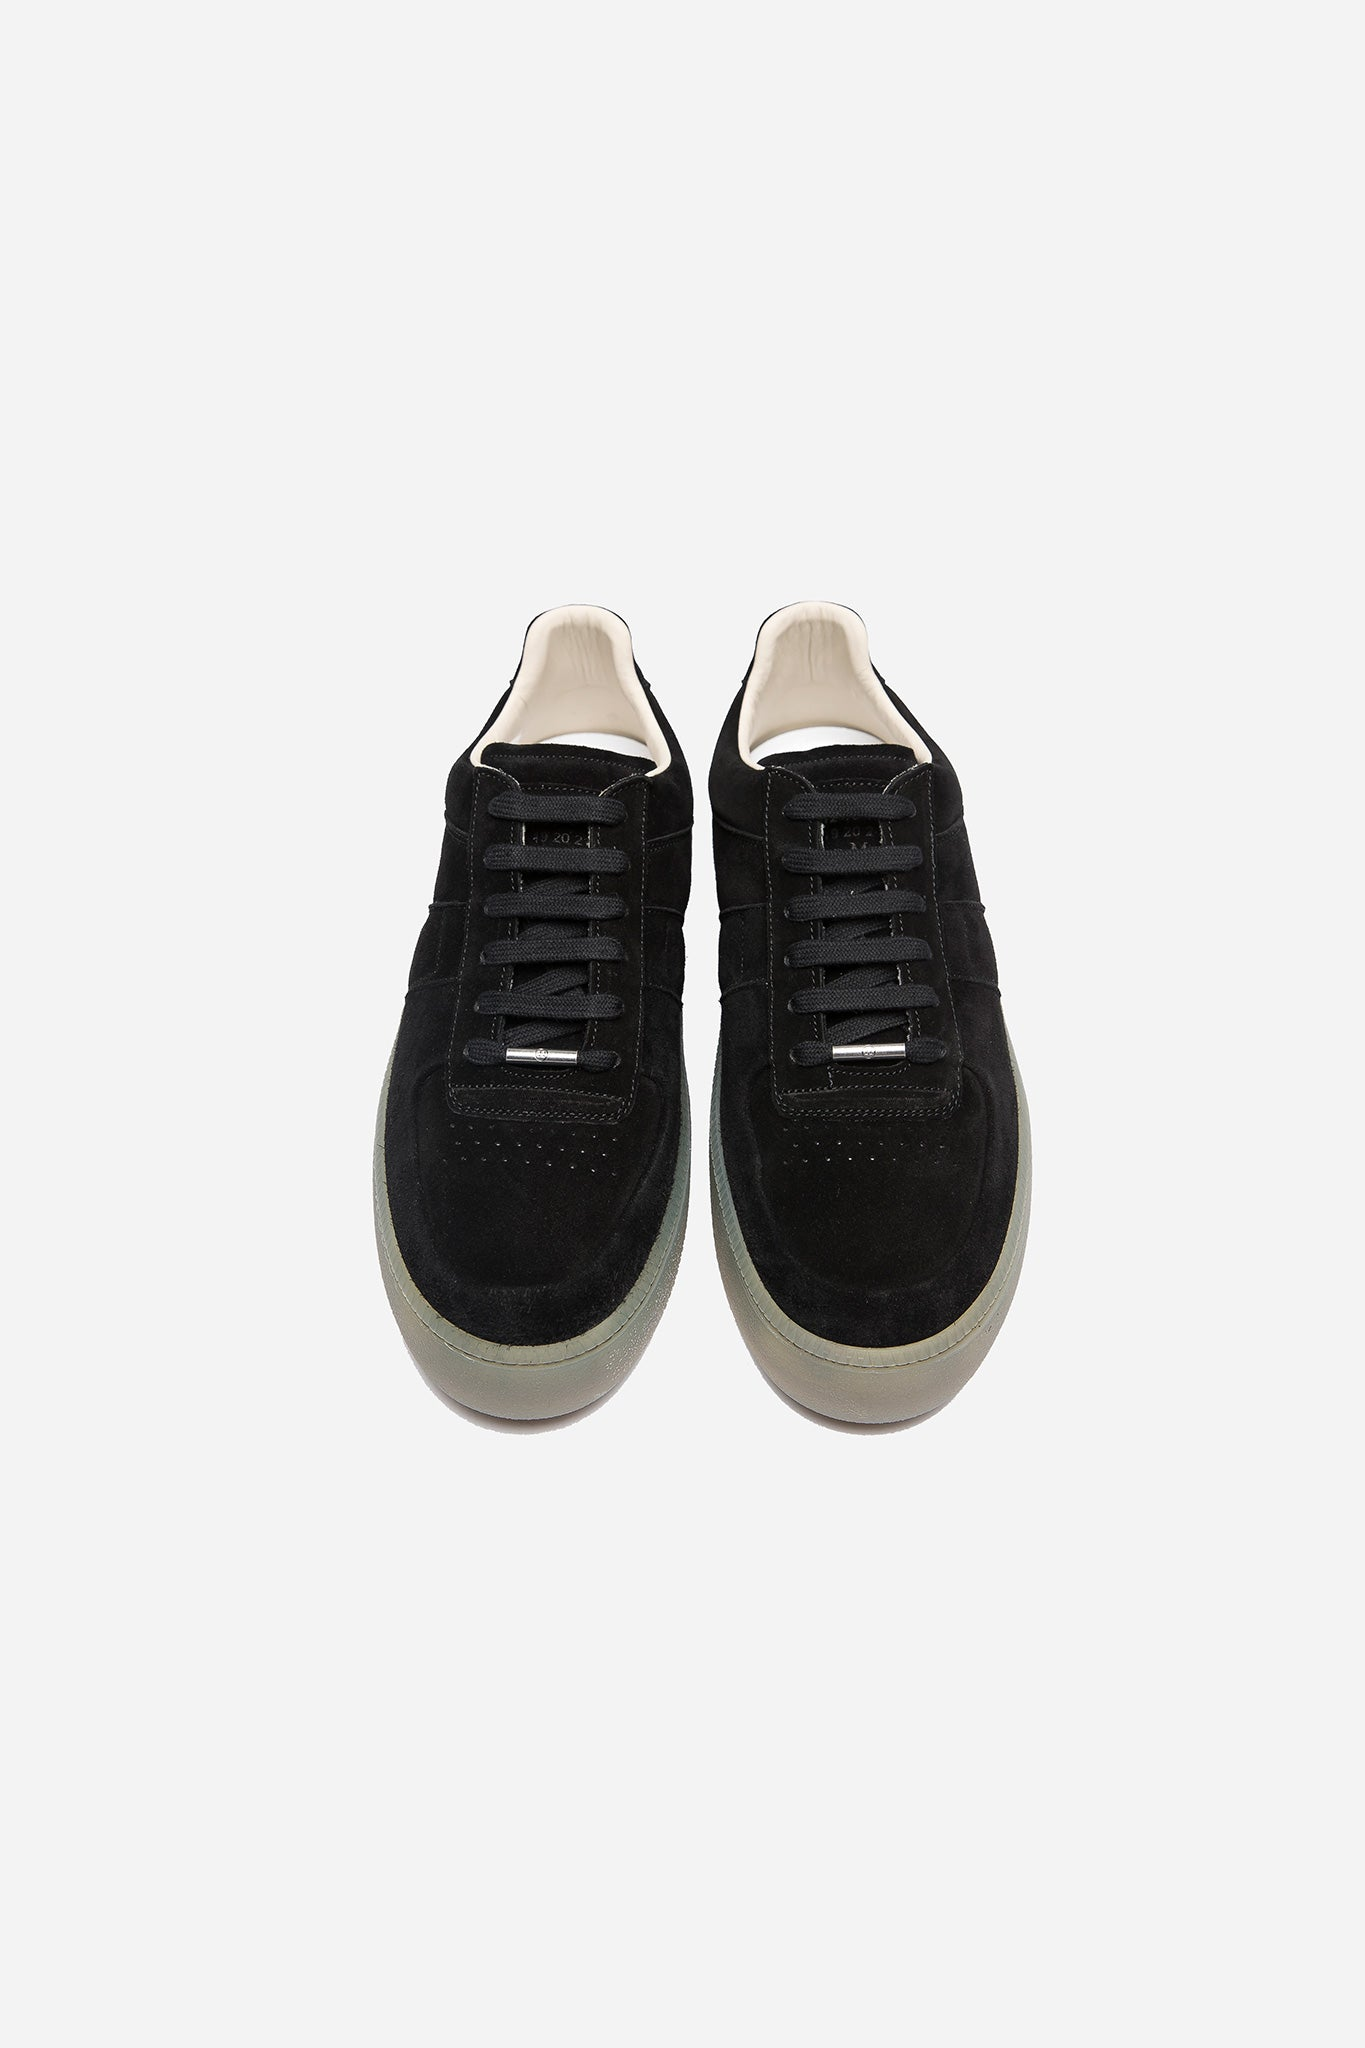 Chunky Sole Sneakers Black Cream